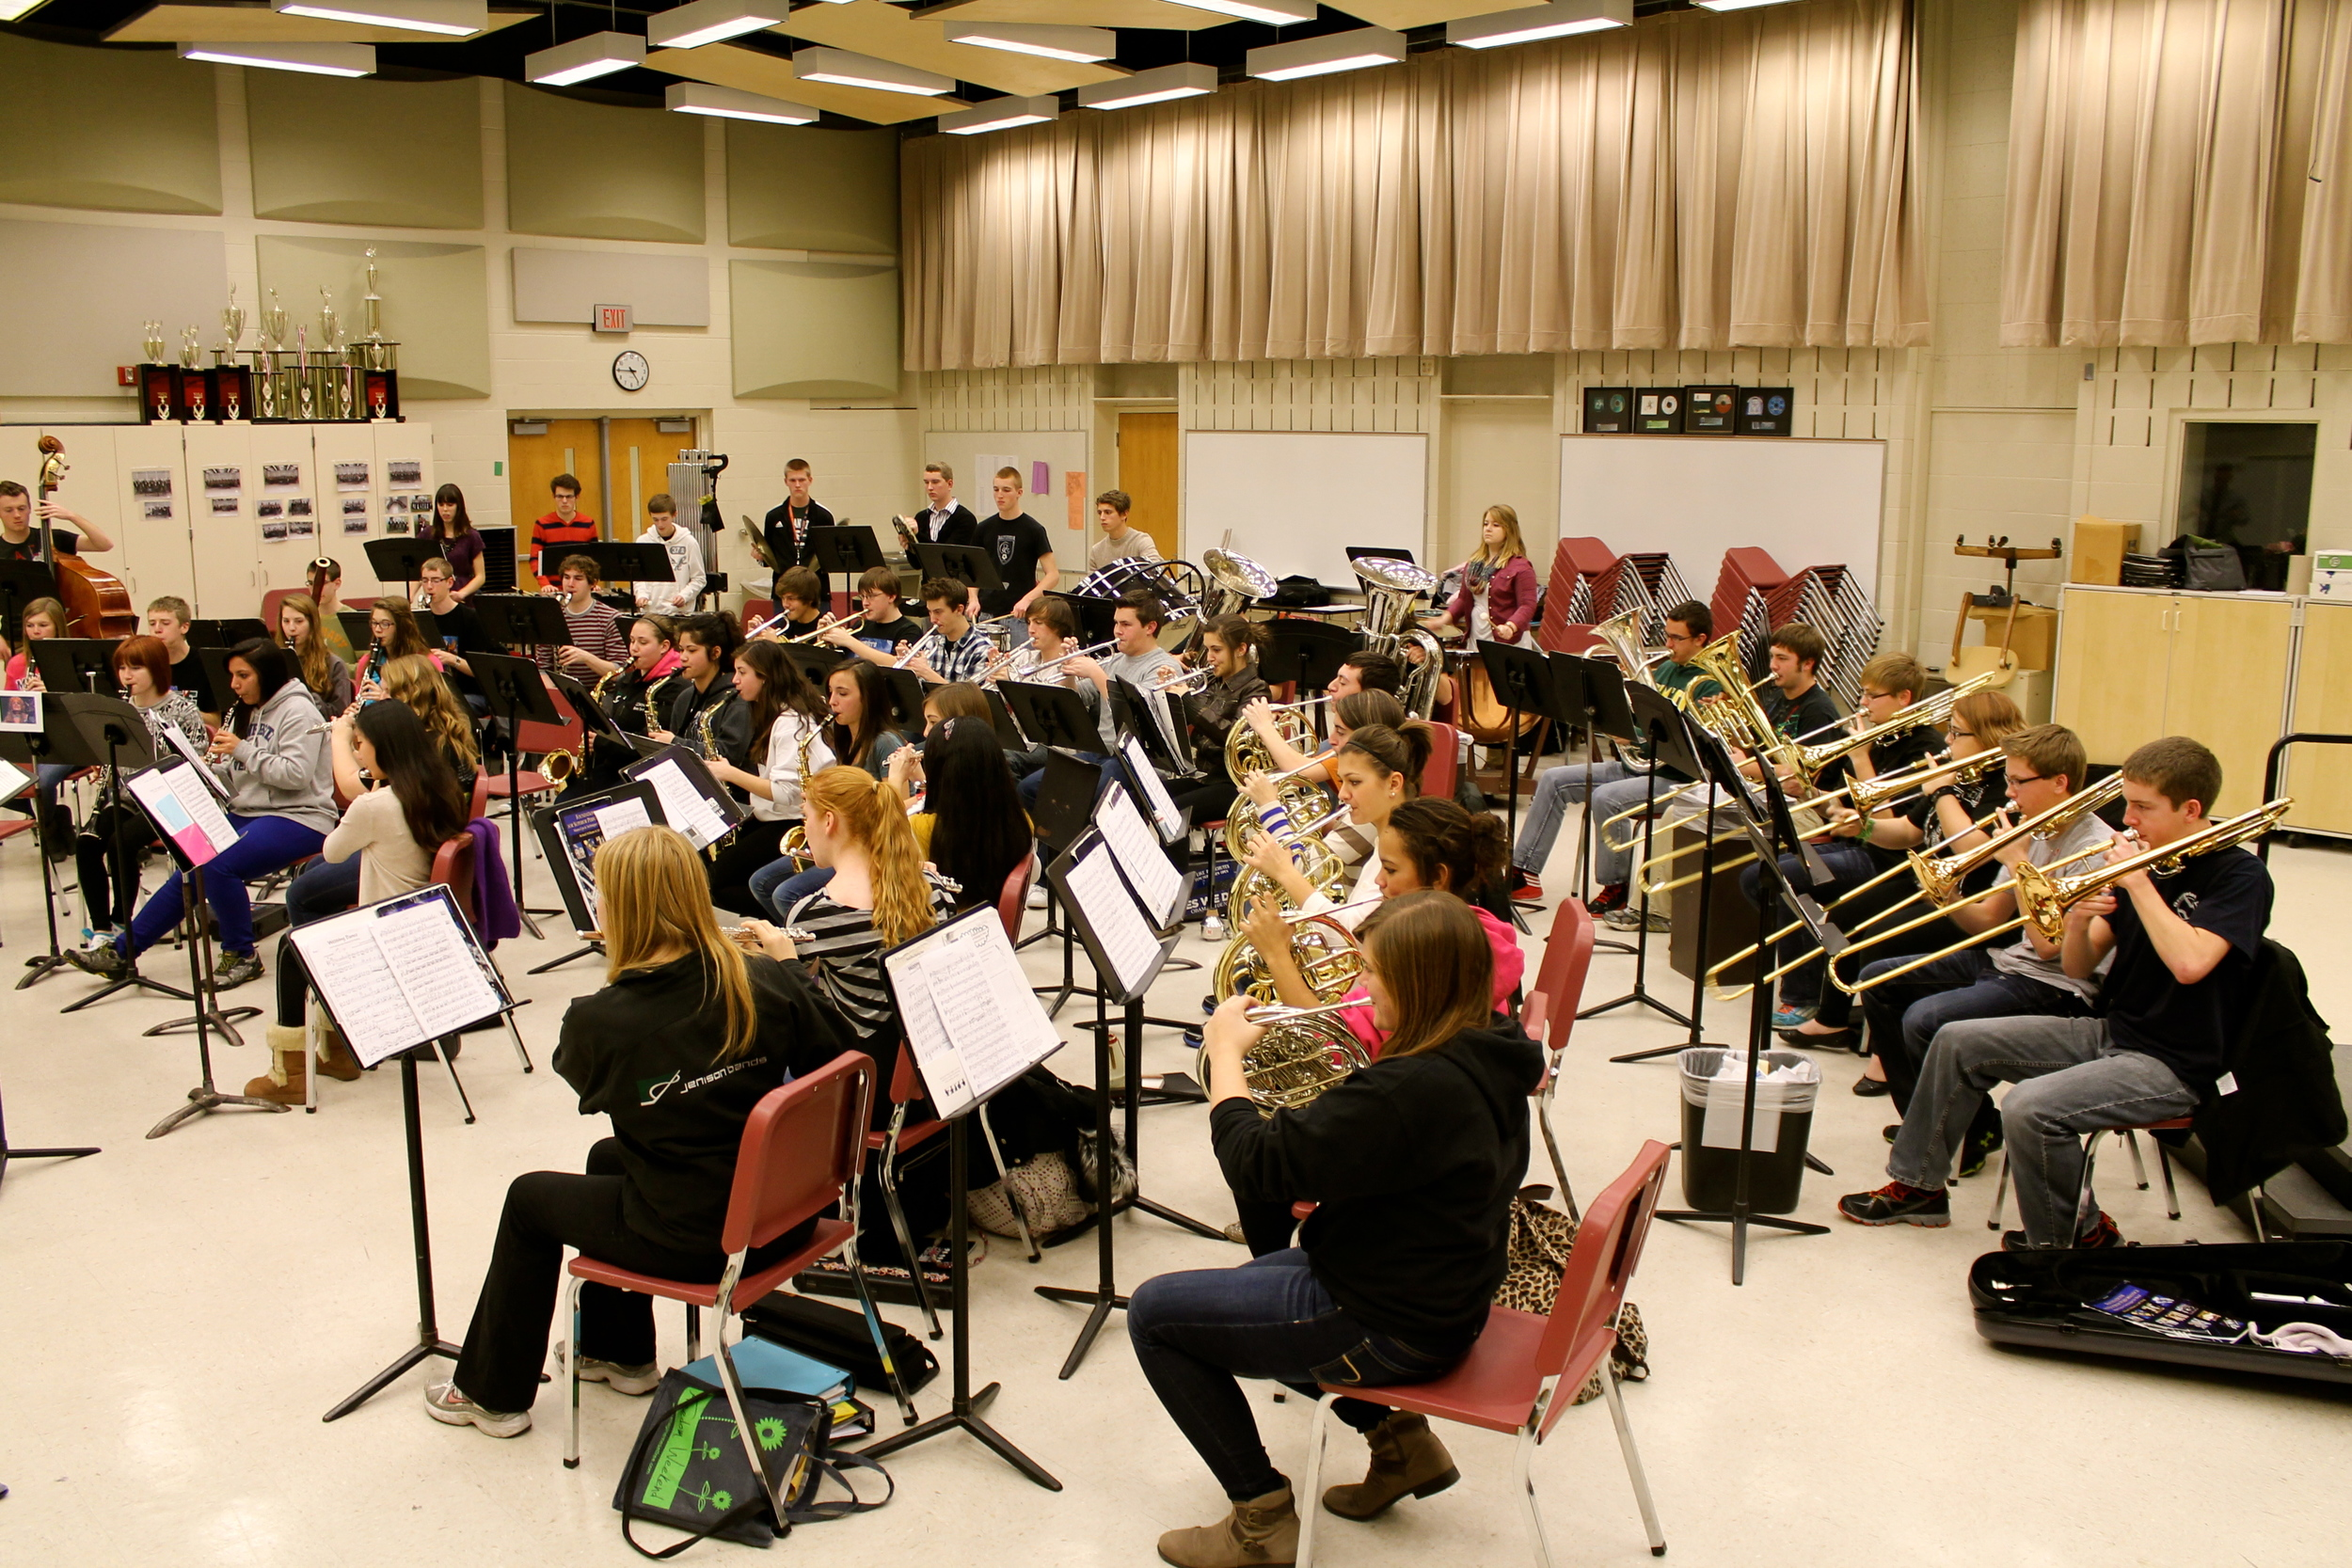 The Jenison Wind Symphony rehearses in preparation for their 2013 MMC performance